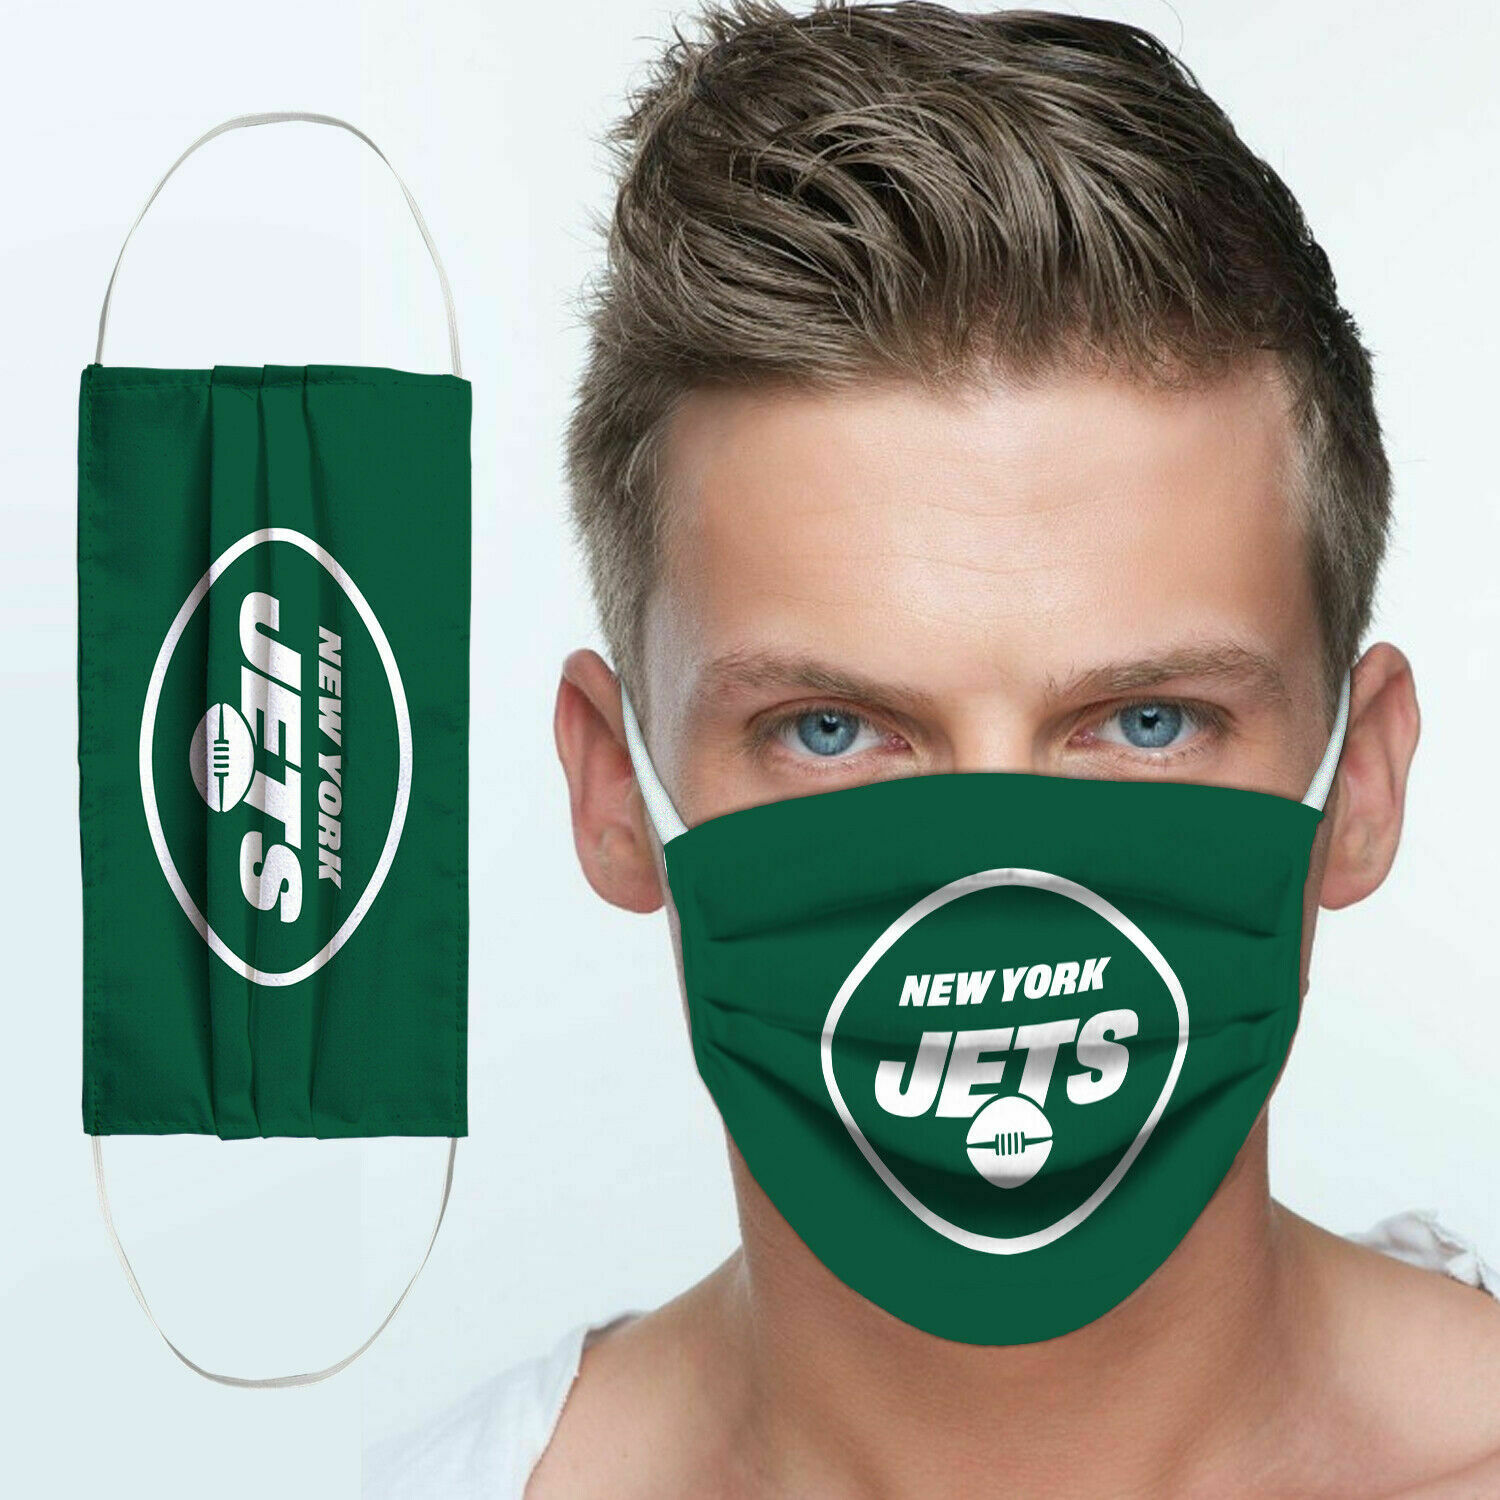 National football league new york jets team cotton face mask 2